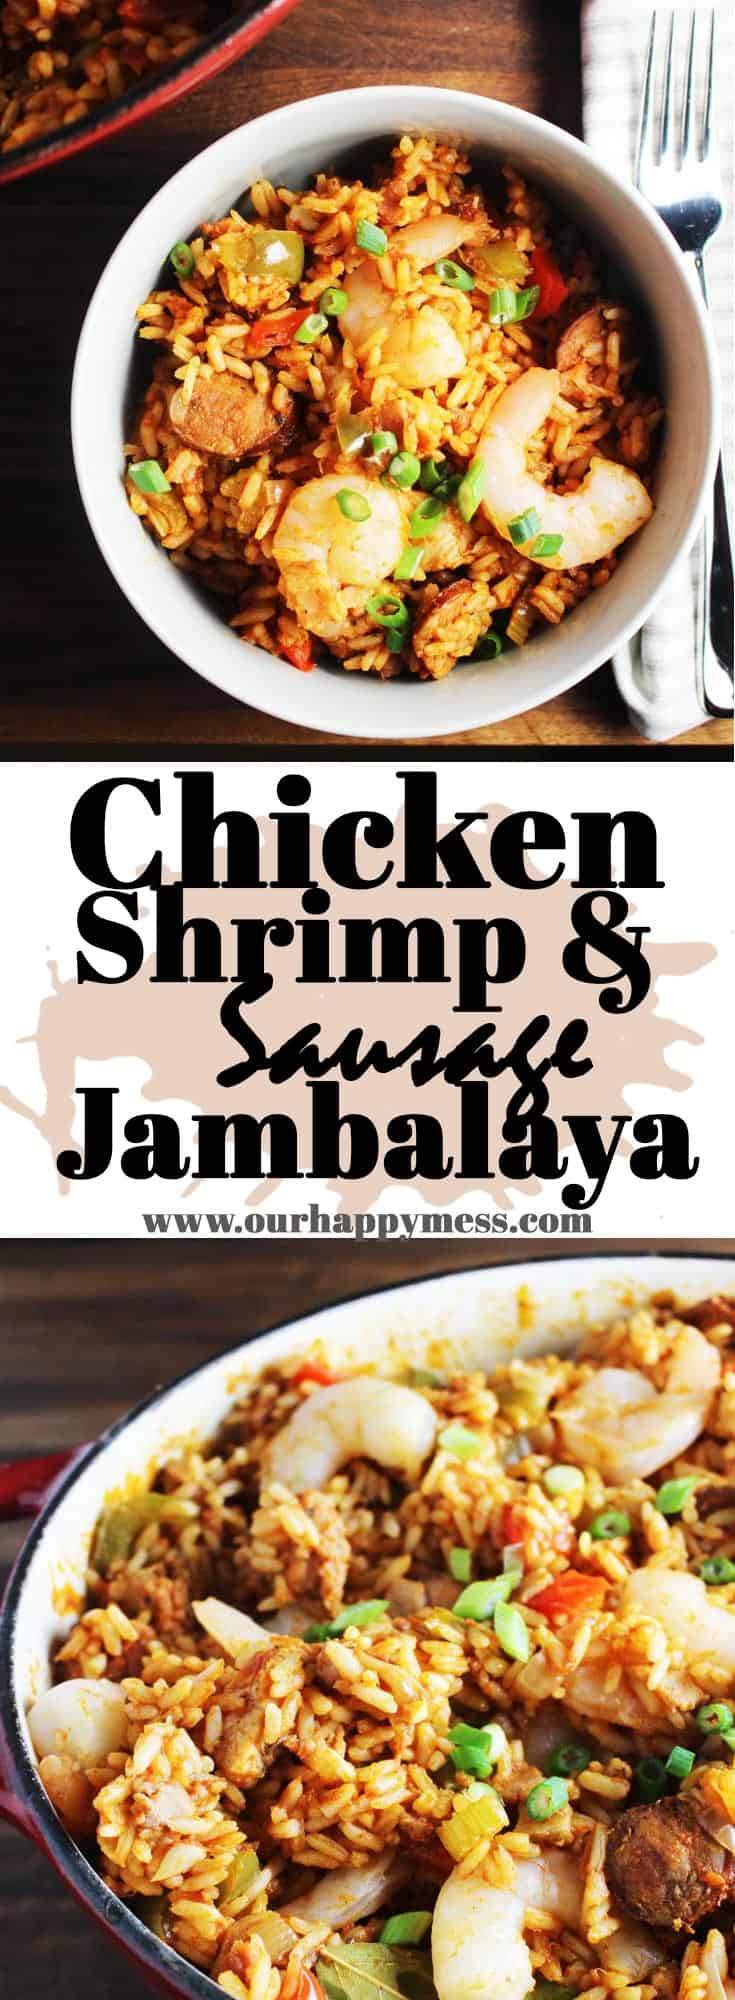 Chicken, shrimp and sausage jambalaya is a simple, hearty Cajun dish that is full of authentic Louisiana flavor. It's easy to make and perfect for celebrating Mardi Gras, no matter where you are in the world. #fattuesday #neworleans #cajun #onepot